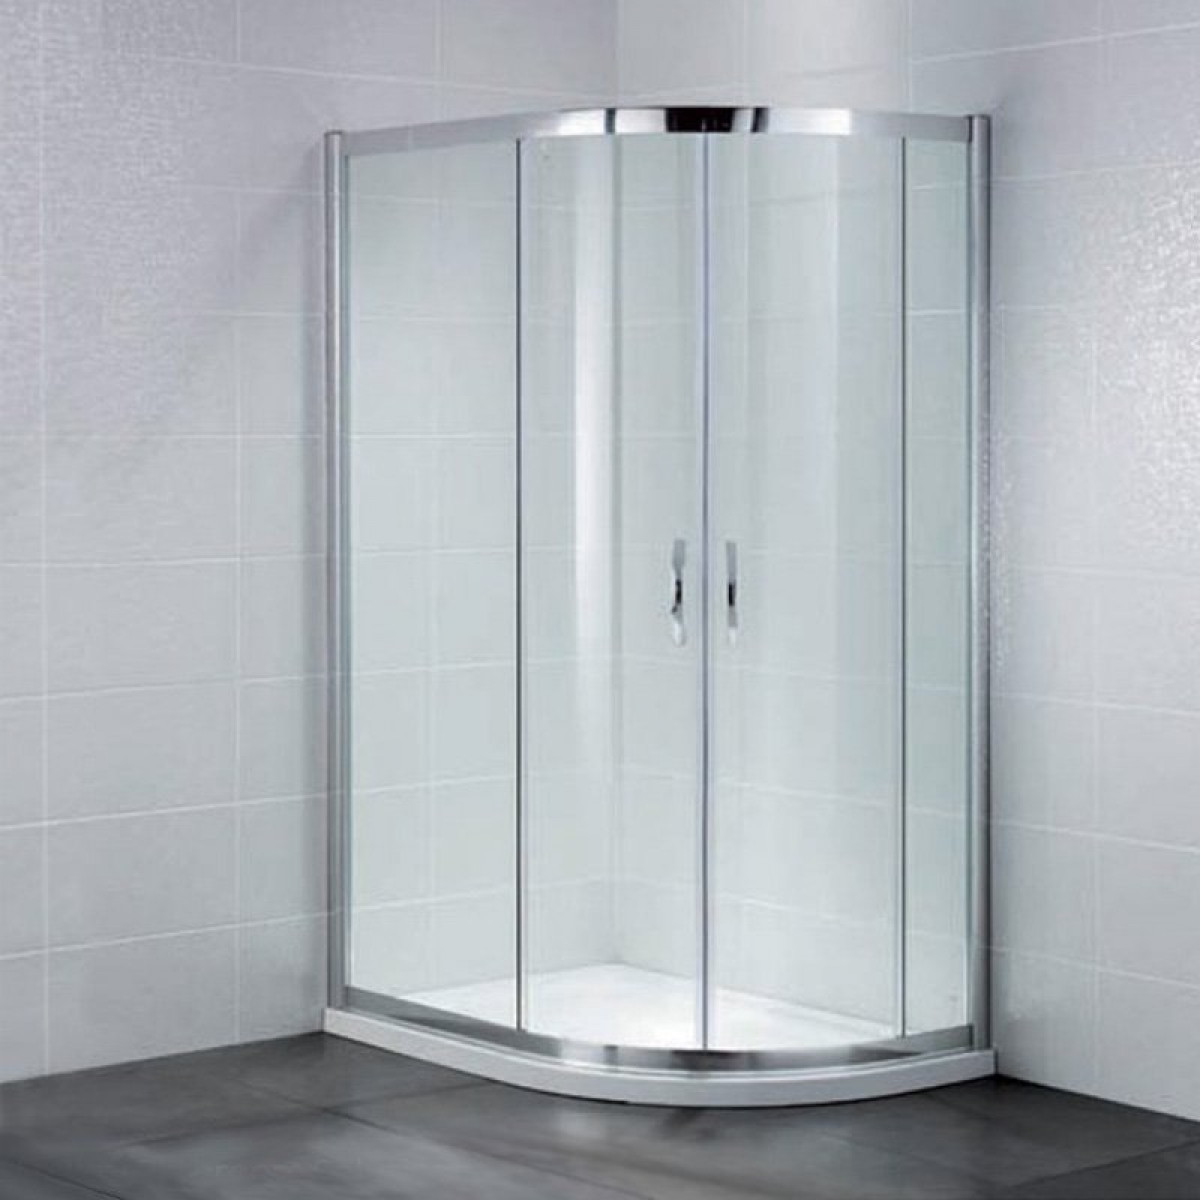 April Identiti2 Offset Double Door Quadrant Shower